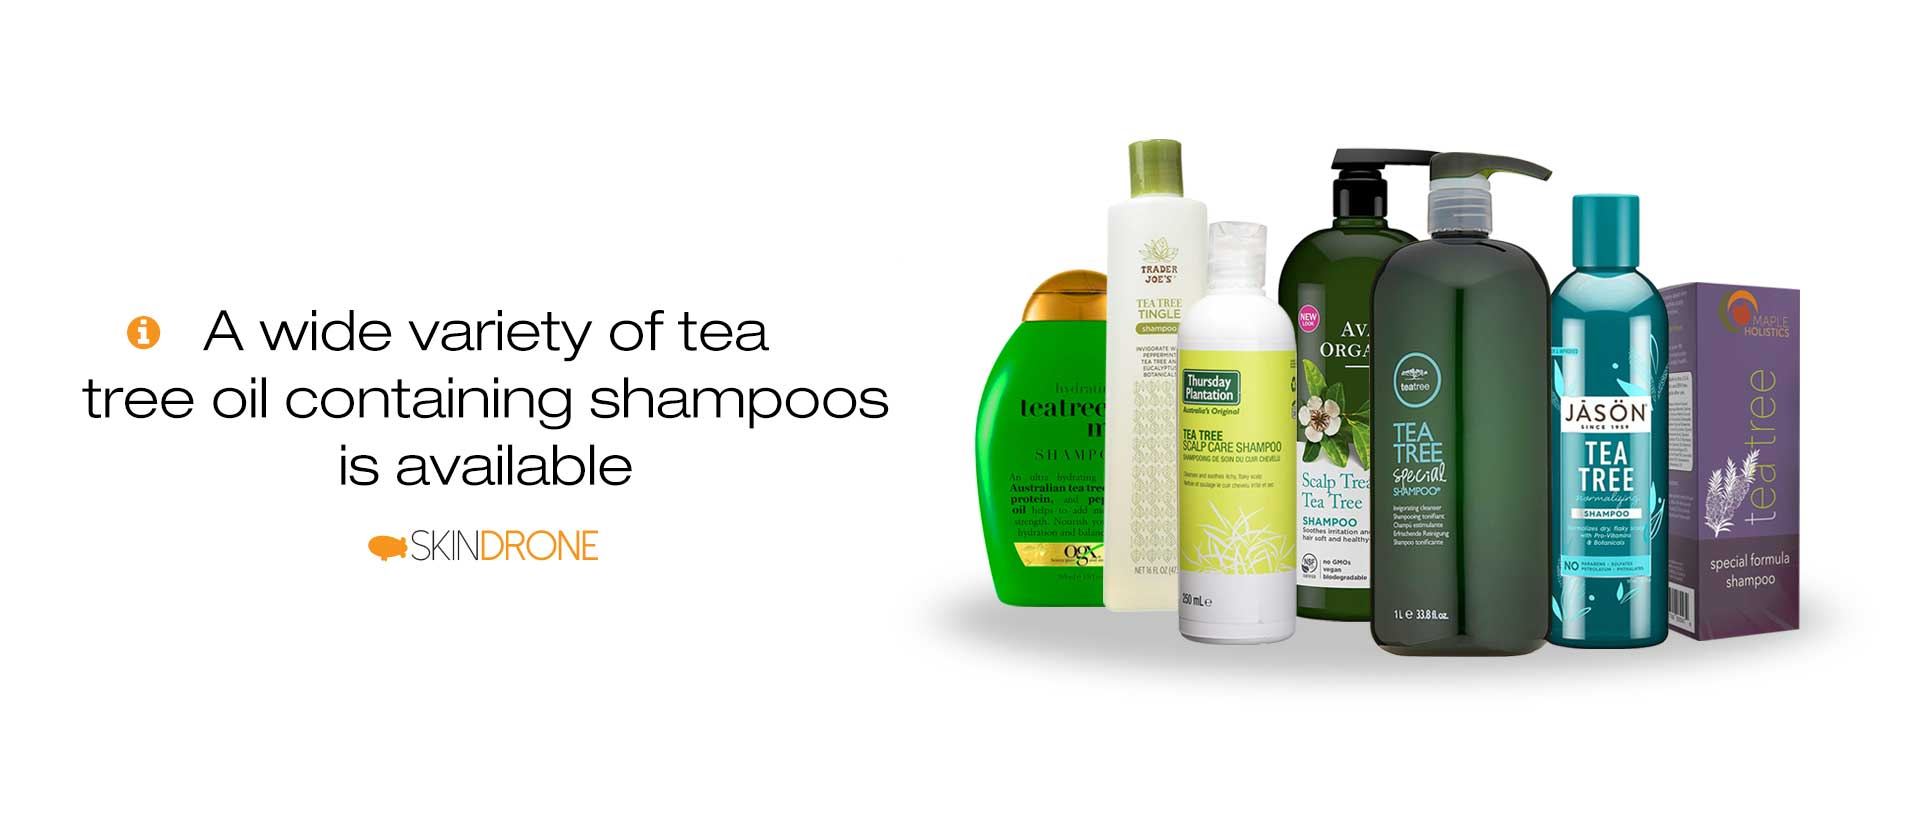 Several different bottles of popular tea tree containing anti-dandruff shampoos